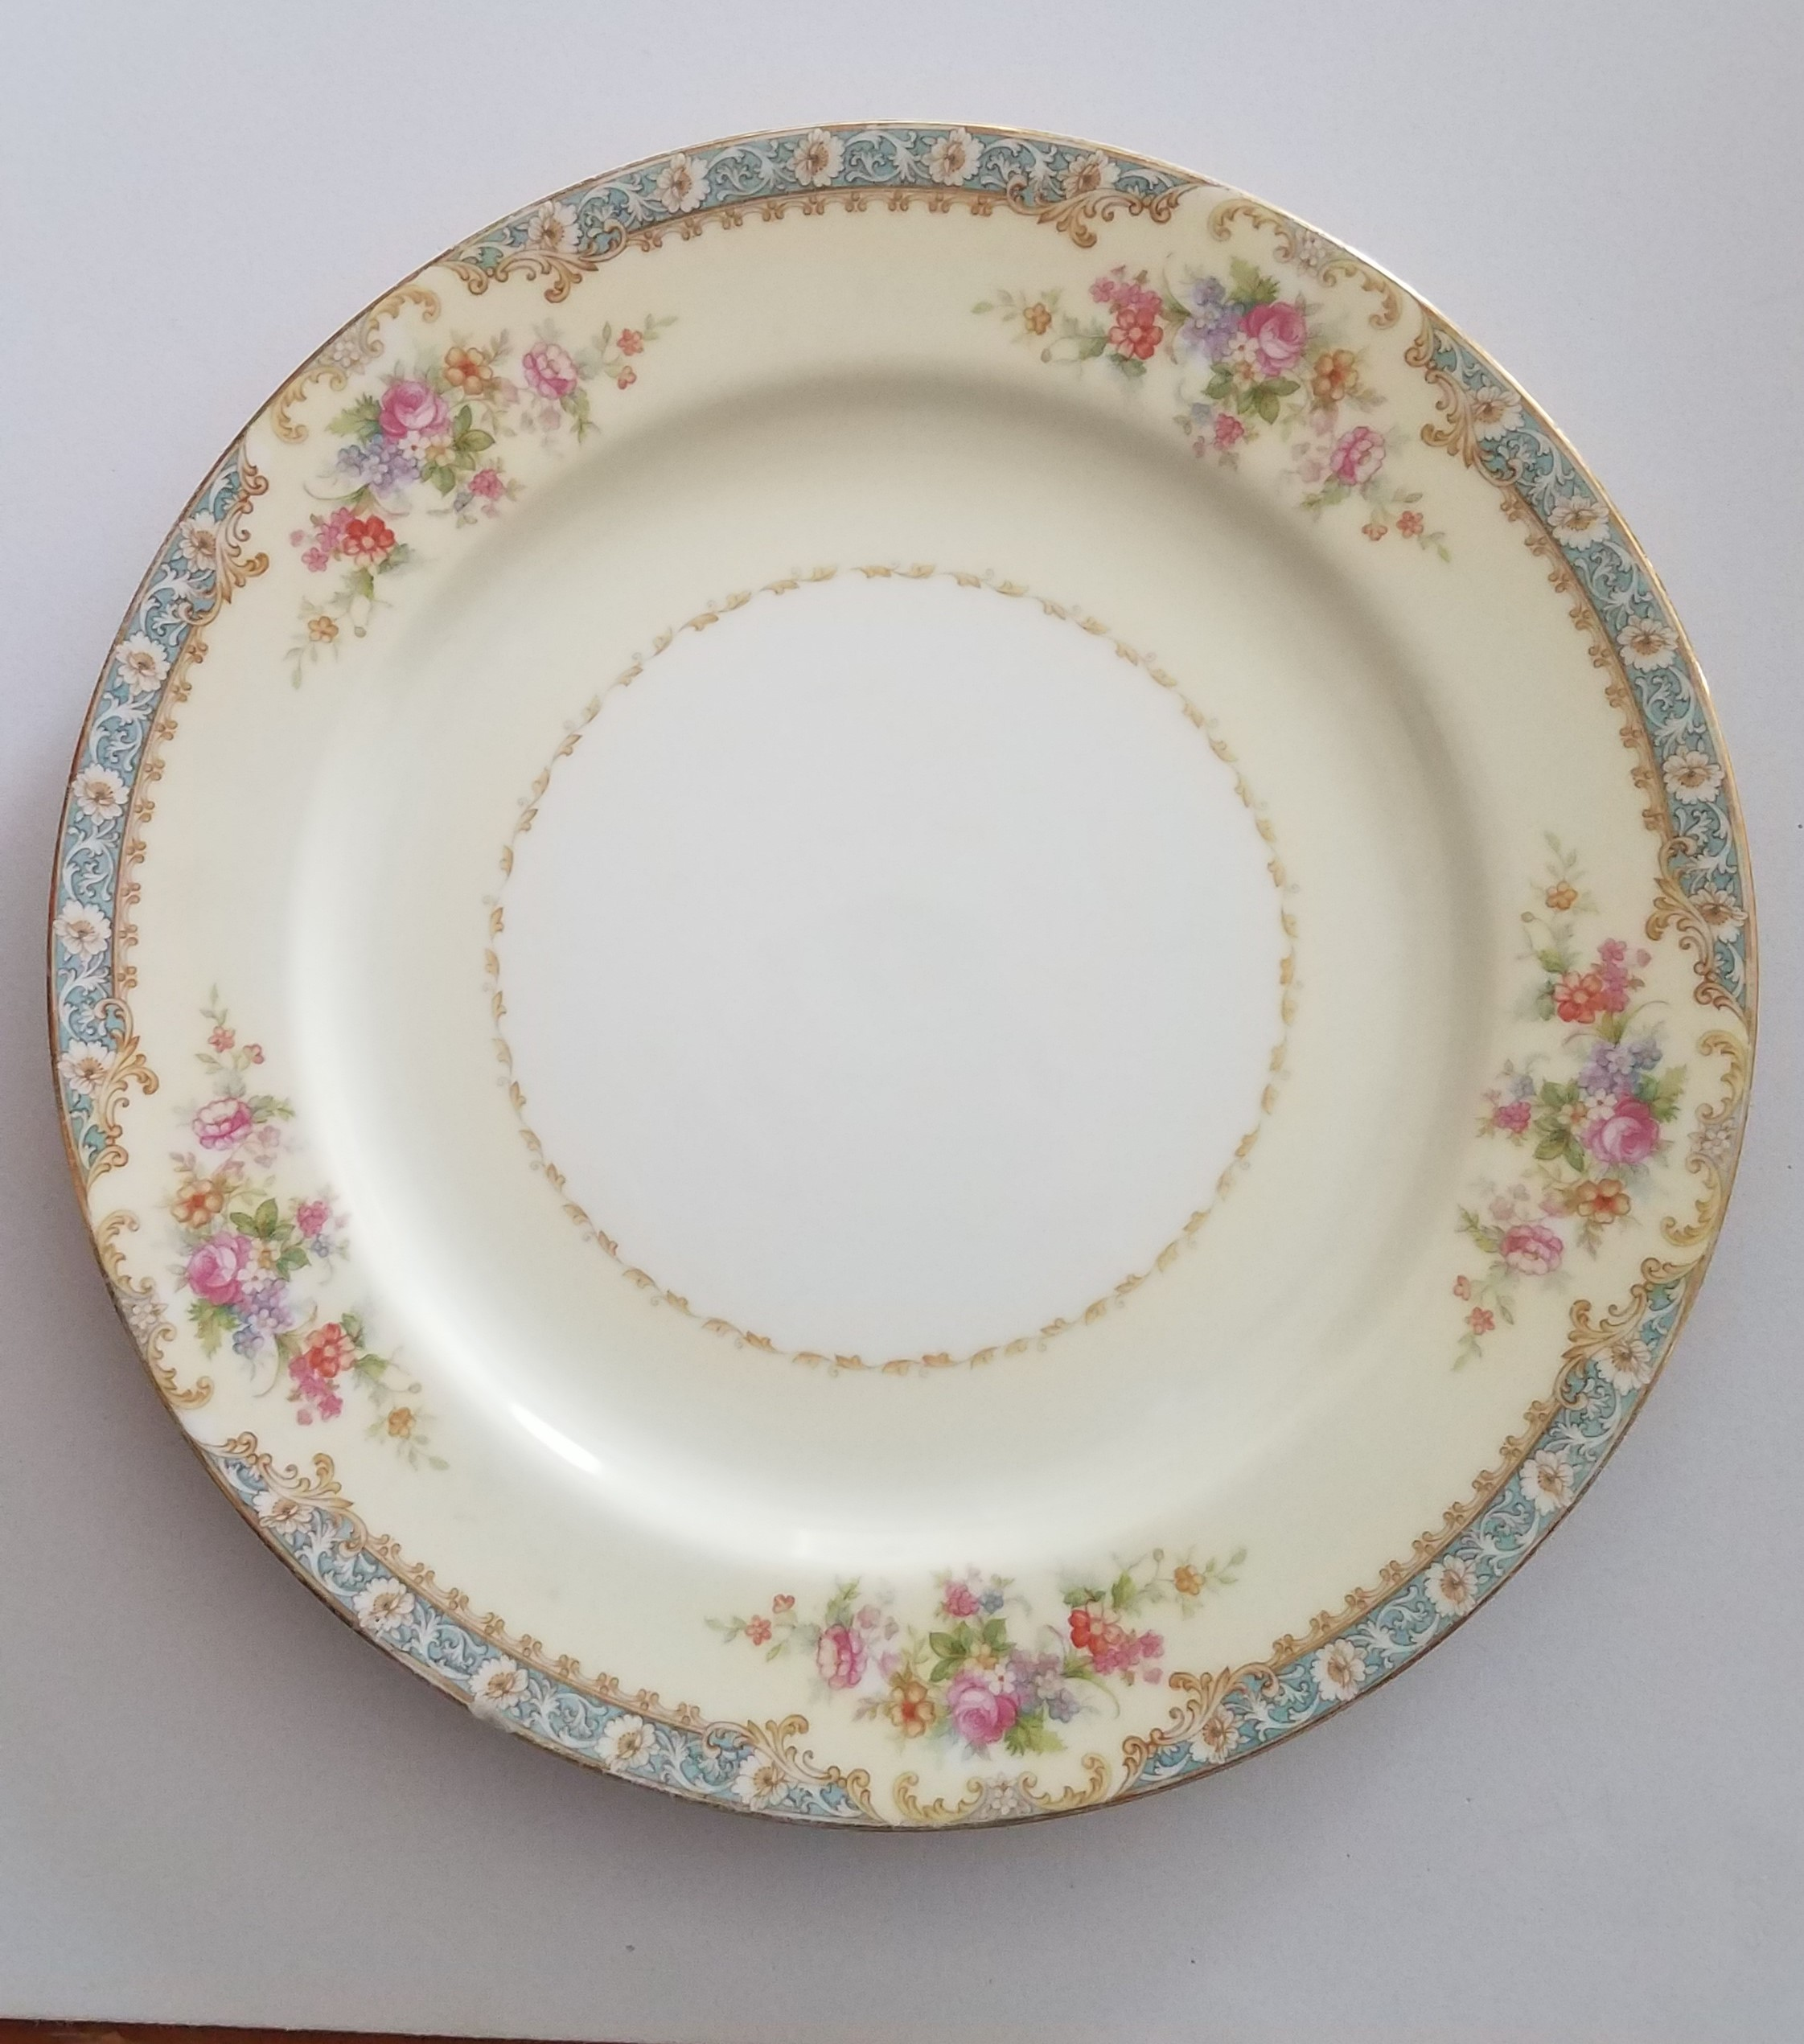 Noritake china.jpg